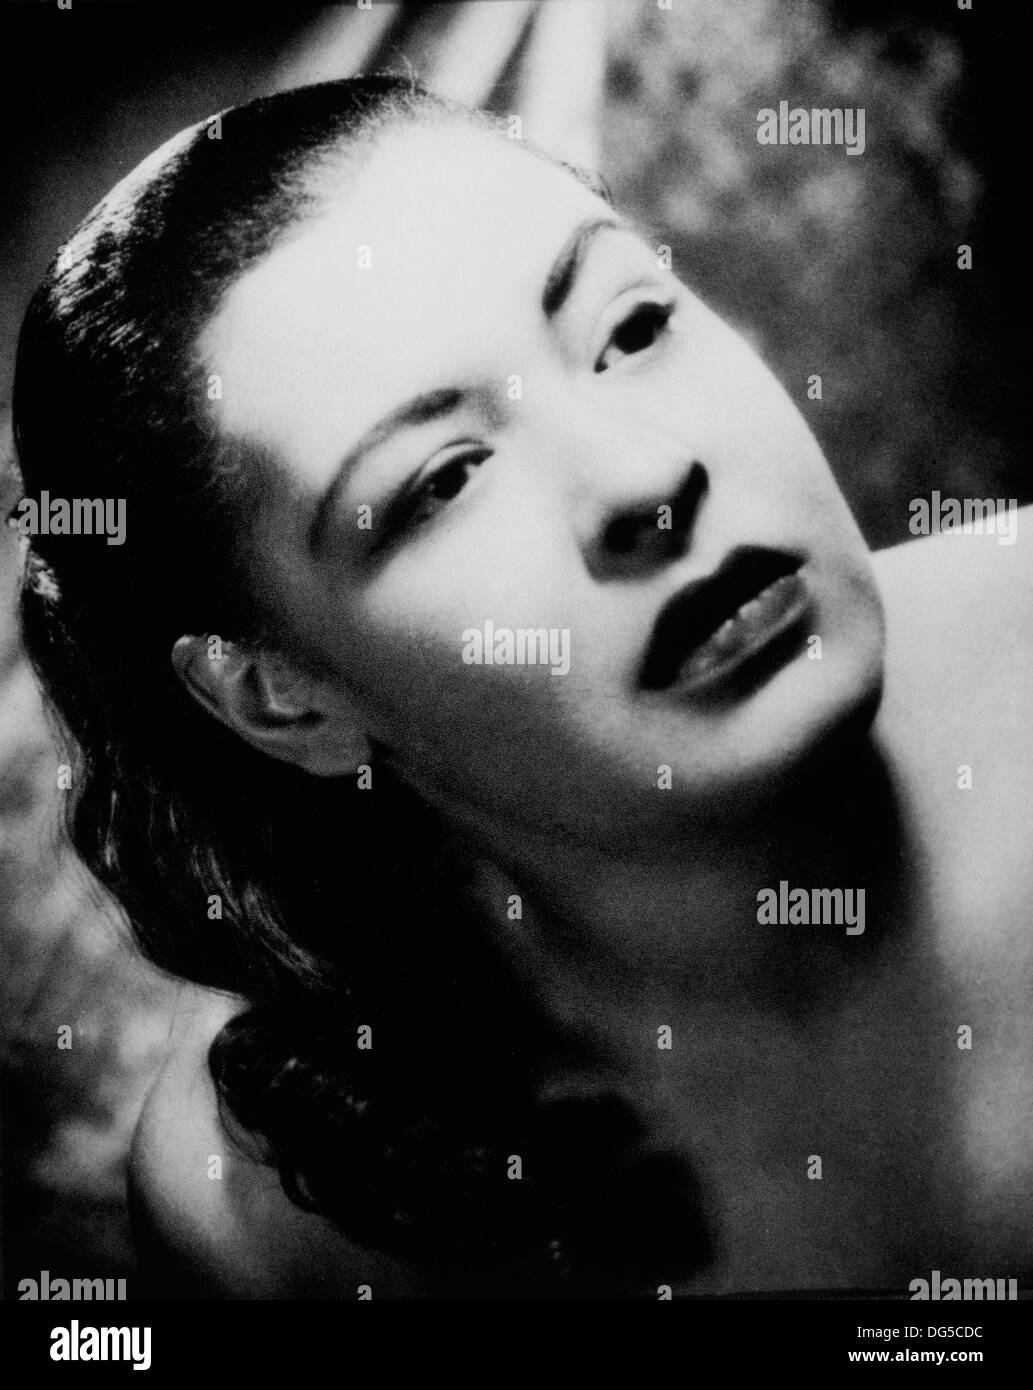 Billie Holiday, Blues und Jazz-Sängerin, Portrait, 1955 Stockbild